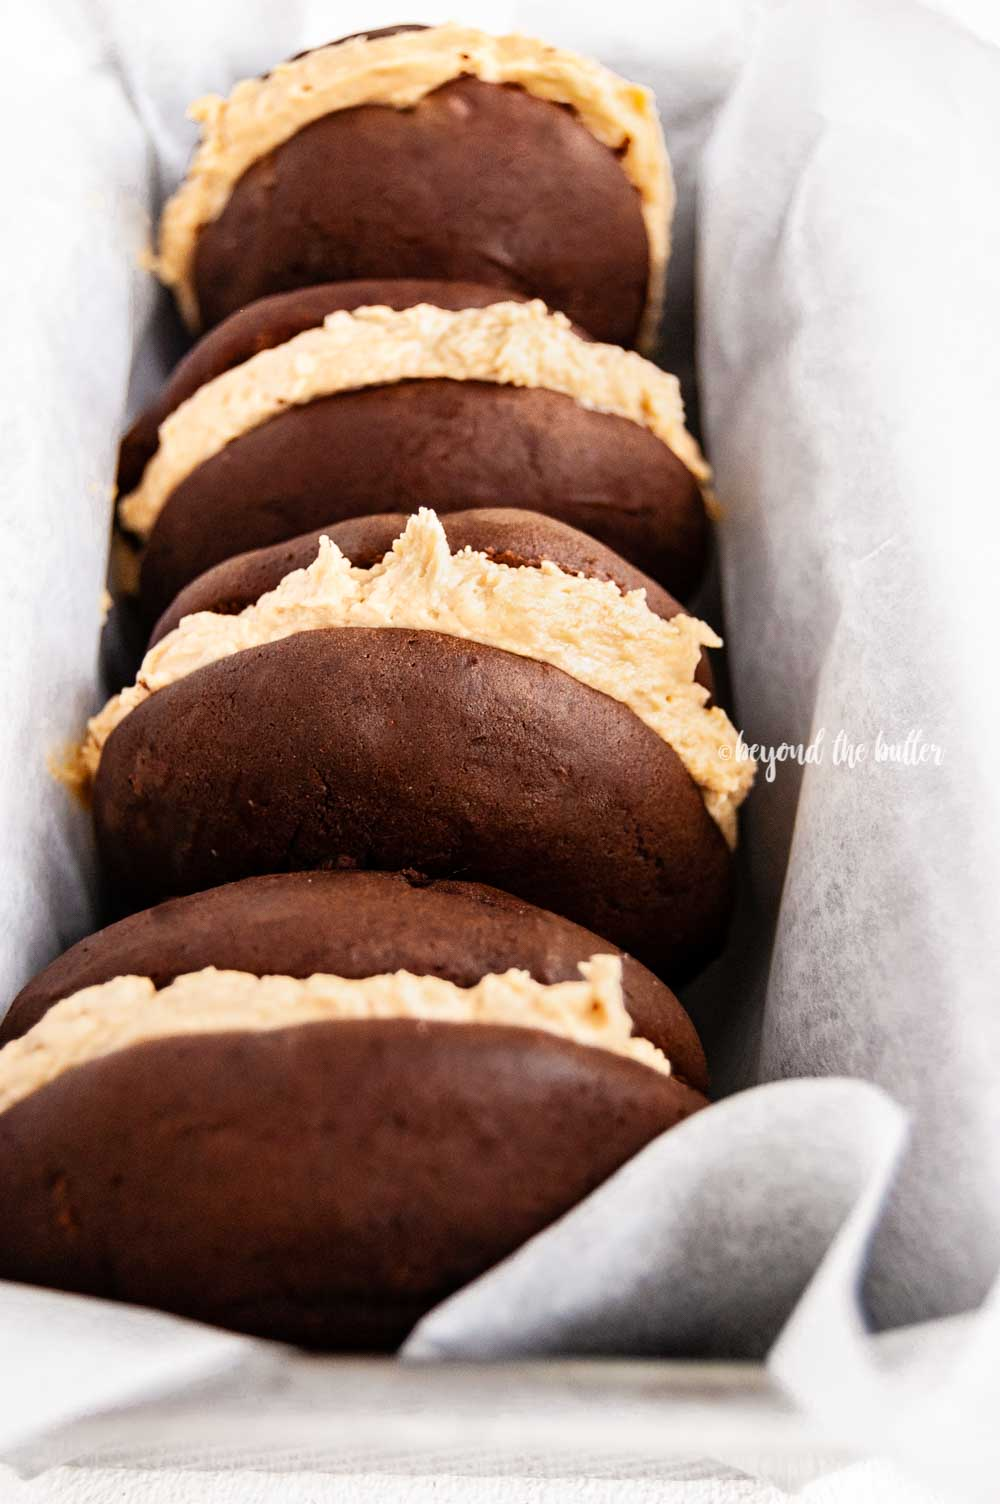 Angled image of chocolate peanut butter whoopie pies stacked in a parchment lined baking pan | All images © Beyond the Butter™